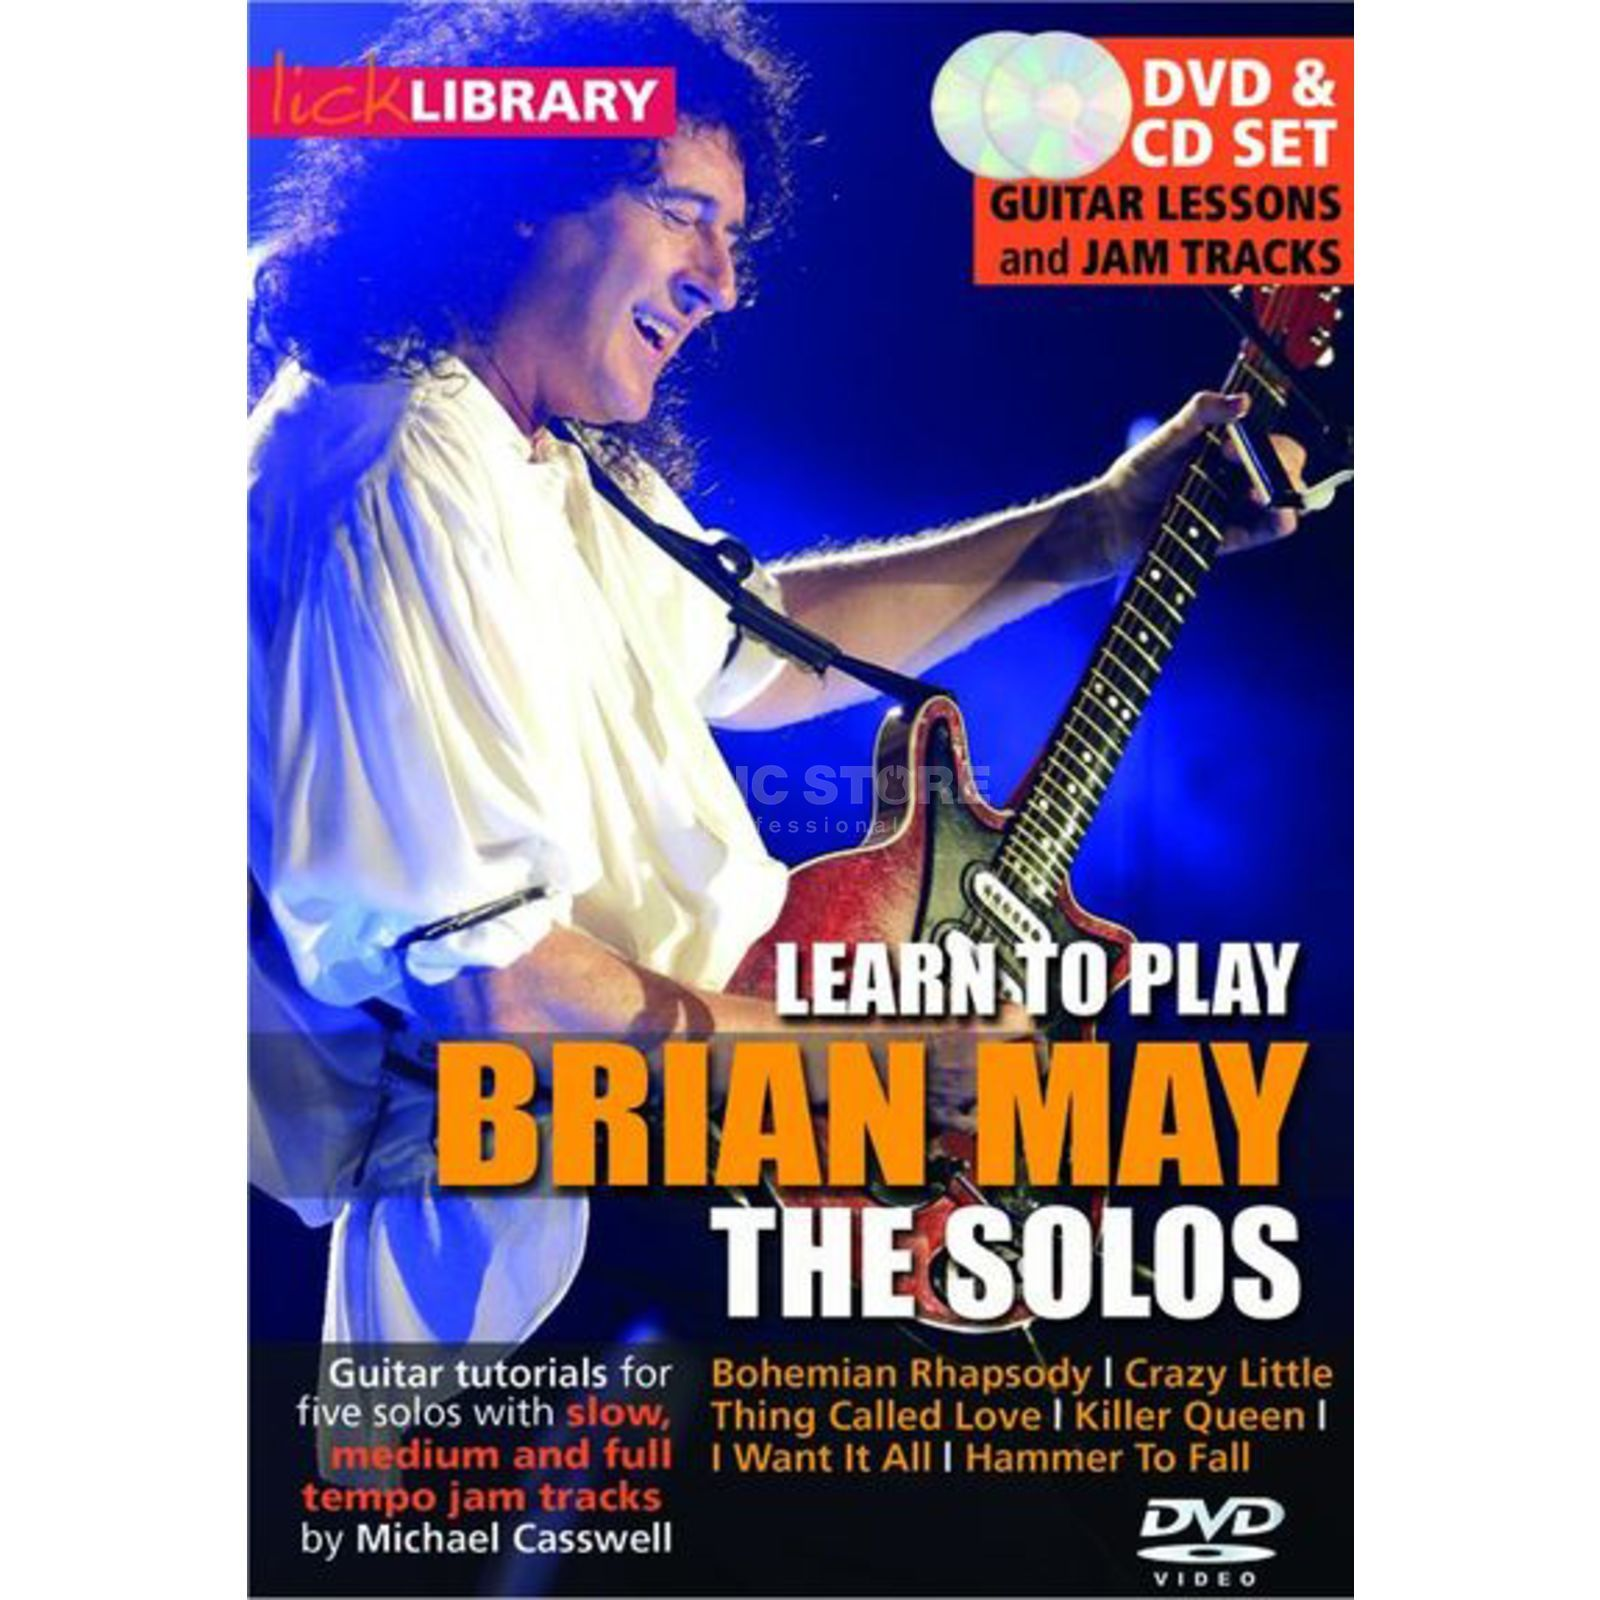 Roadrock International Lick Library: Learn To Play Brian May - The Solos DVD Produktbillede